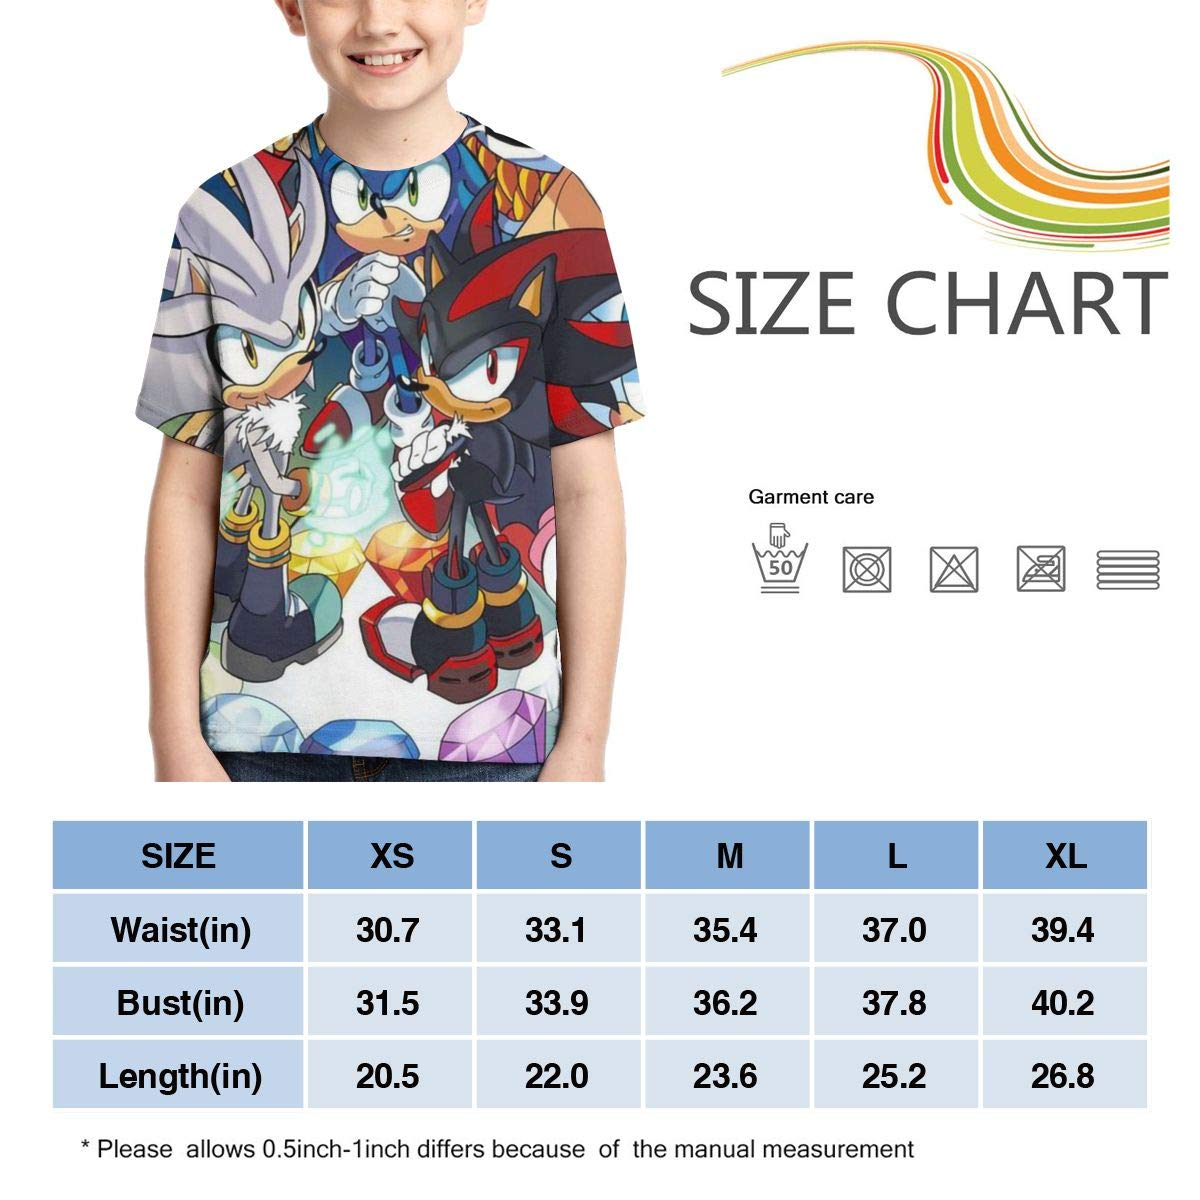 Lula Campbell Short Sleeves So-ni-c Youth and Childrens Round Neck Creative Print T-Shirt Unisex